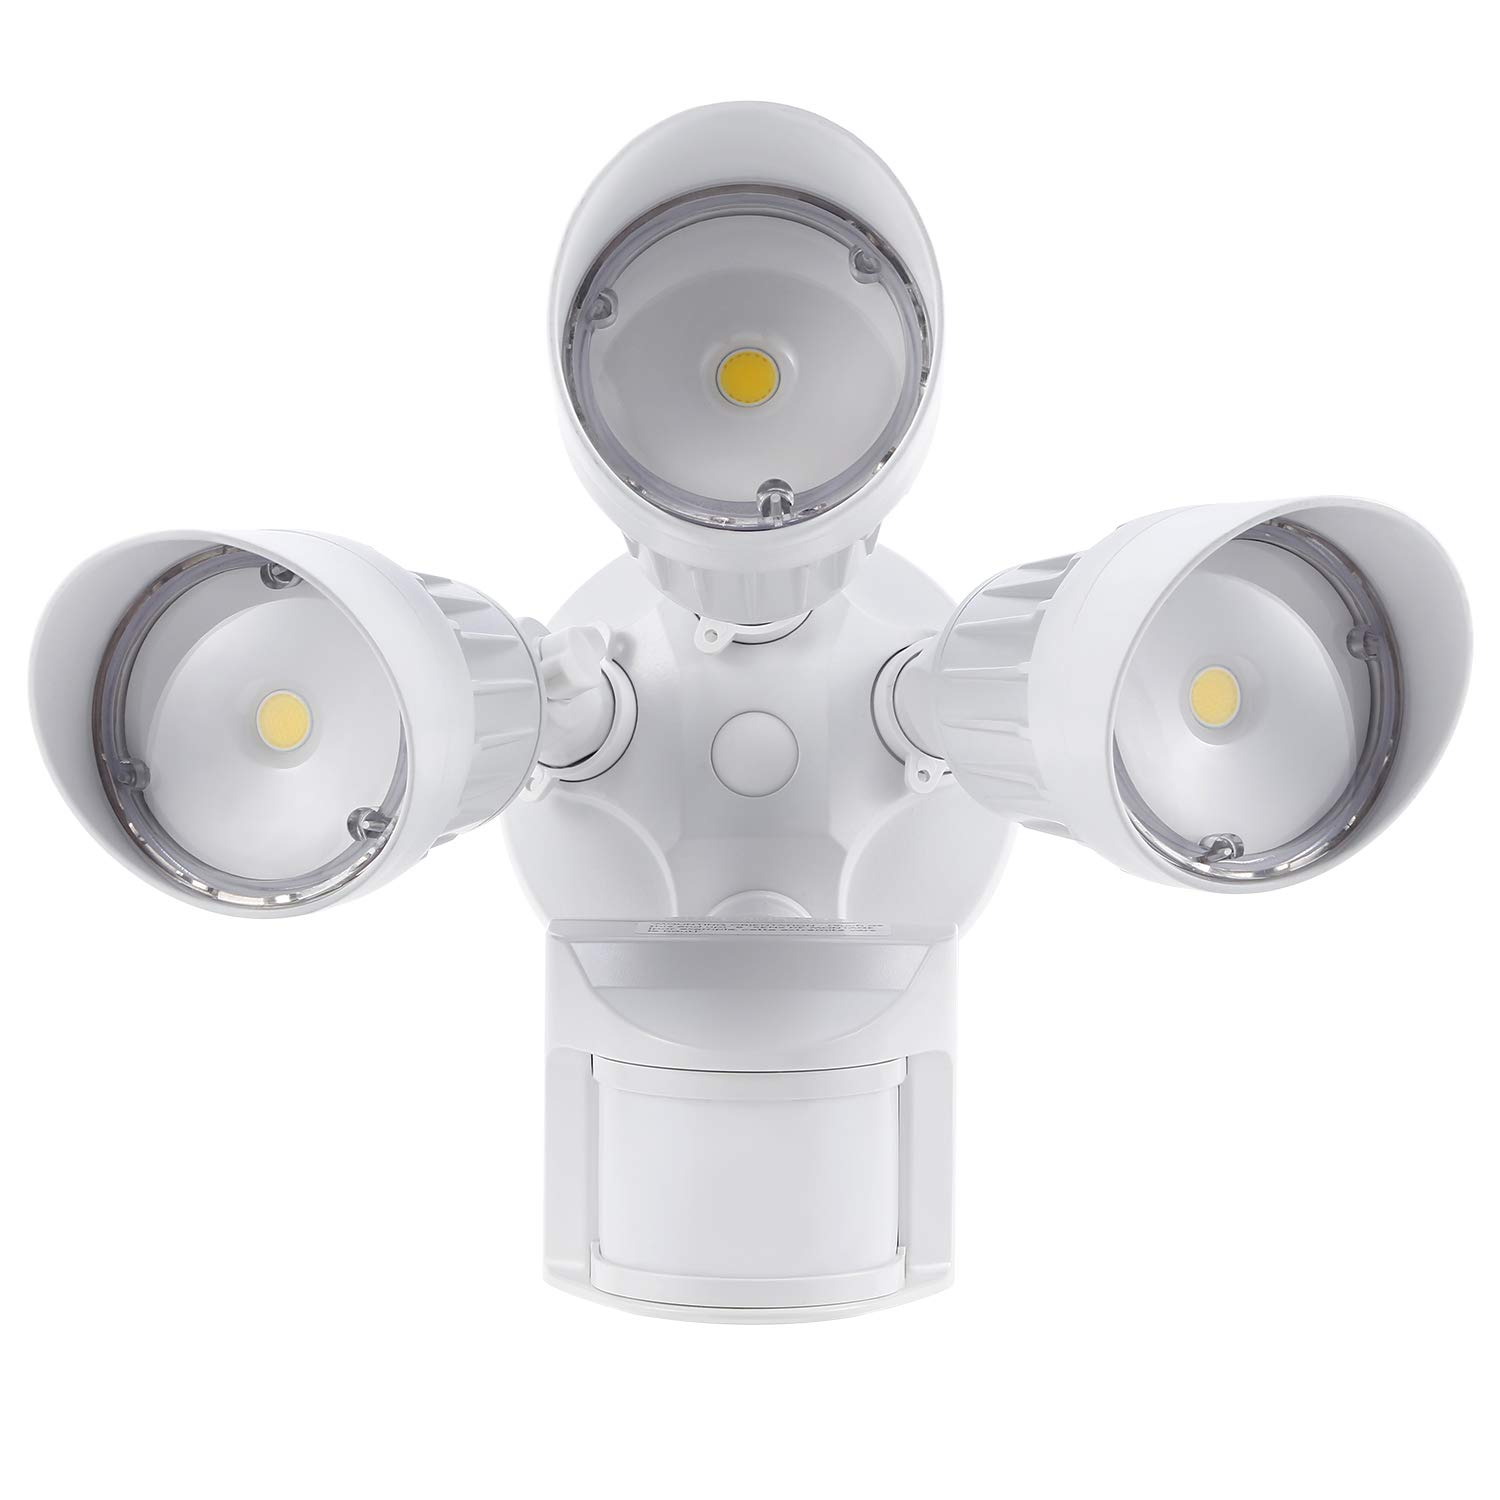 Com Leonlite 30w 3 Head Motion Activated Led Outdoor Security Light Photo Sensor Modes 150w Halogen Equivalent 5000k Daylight